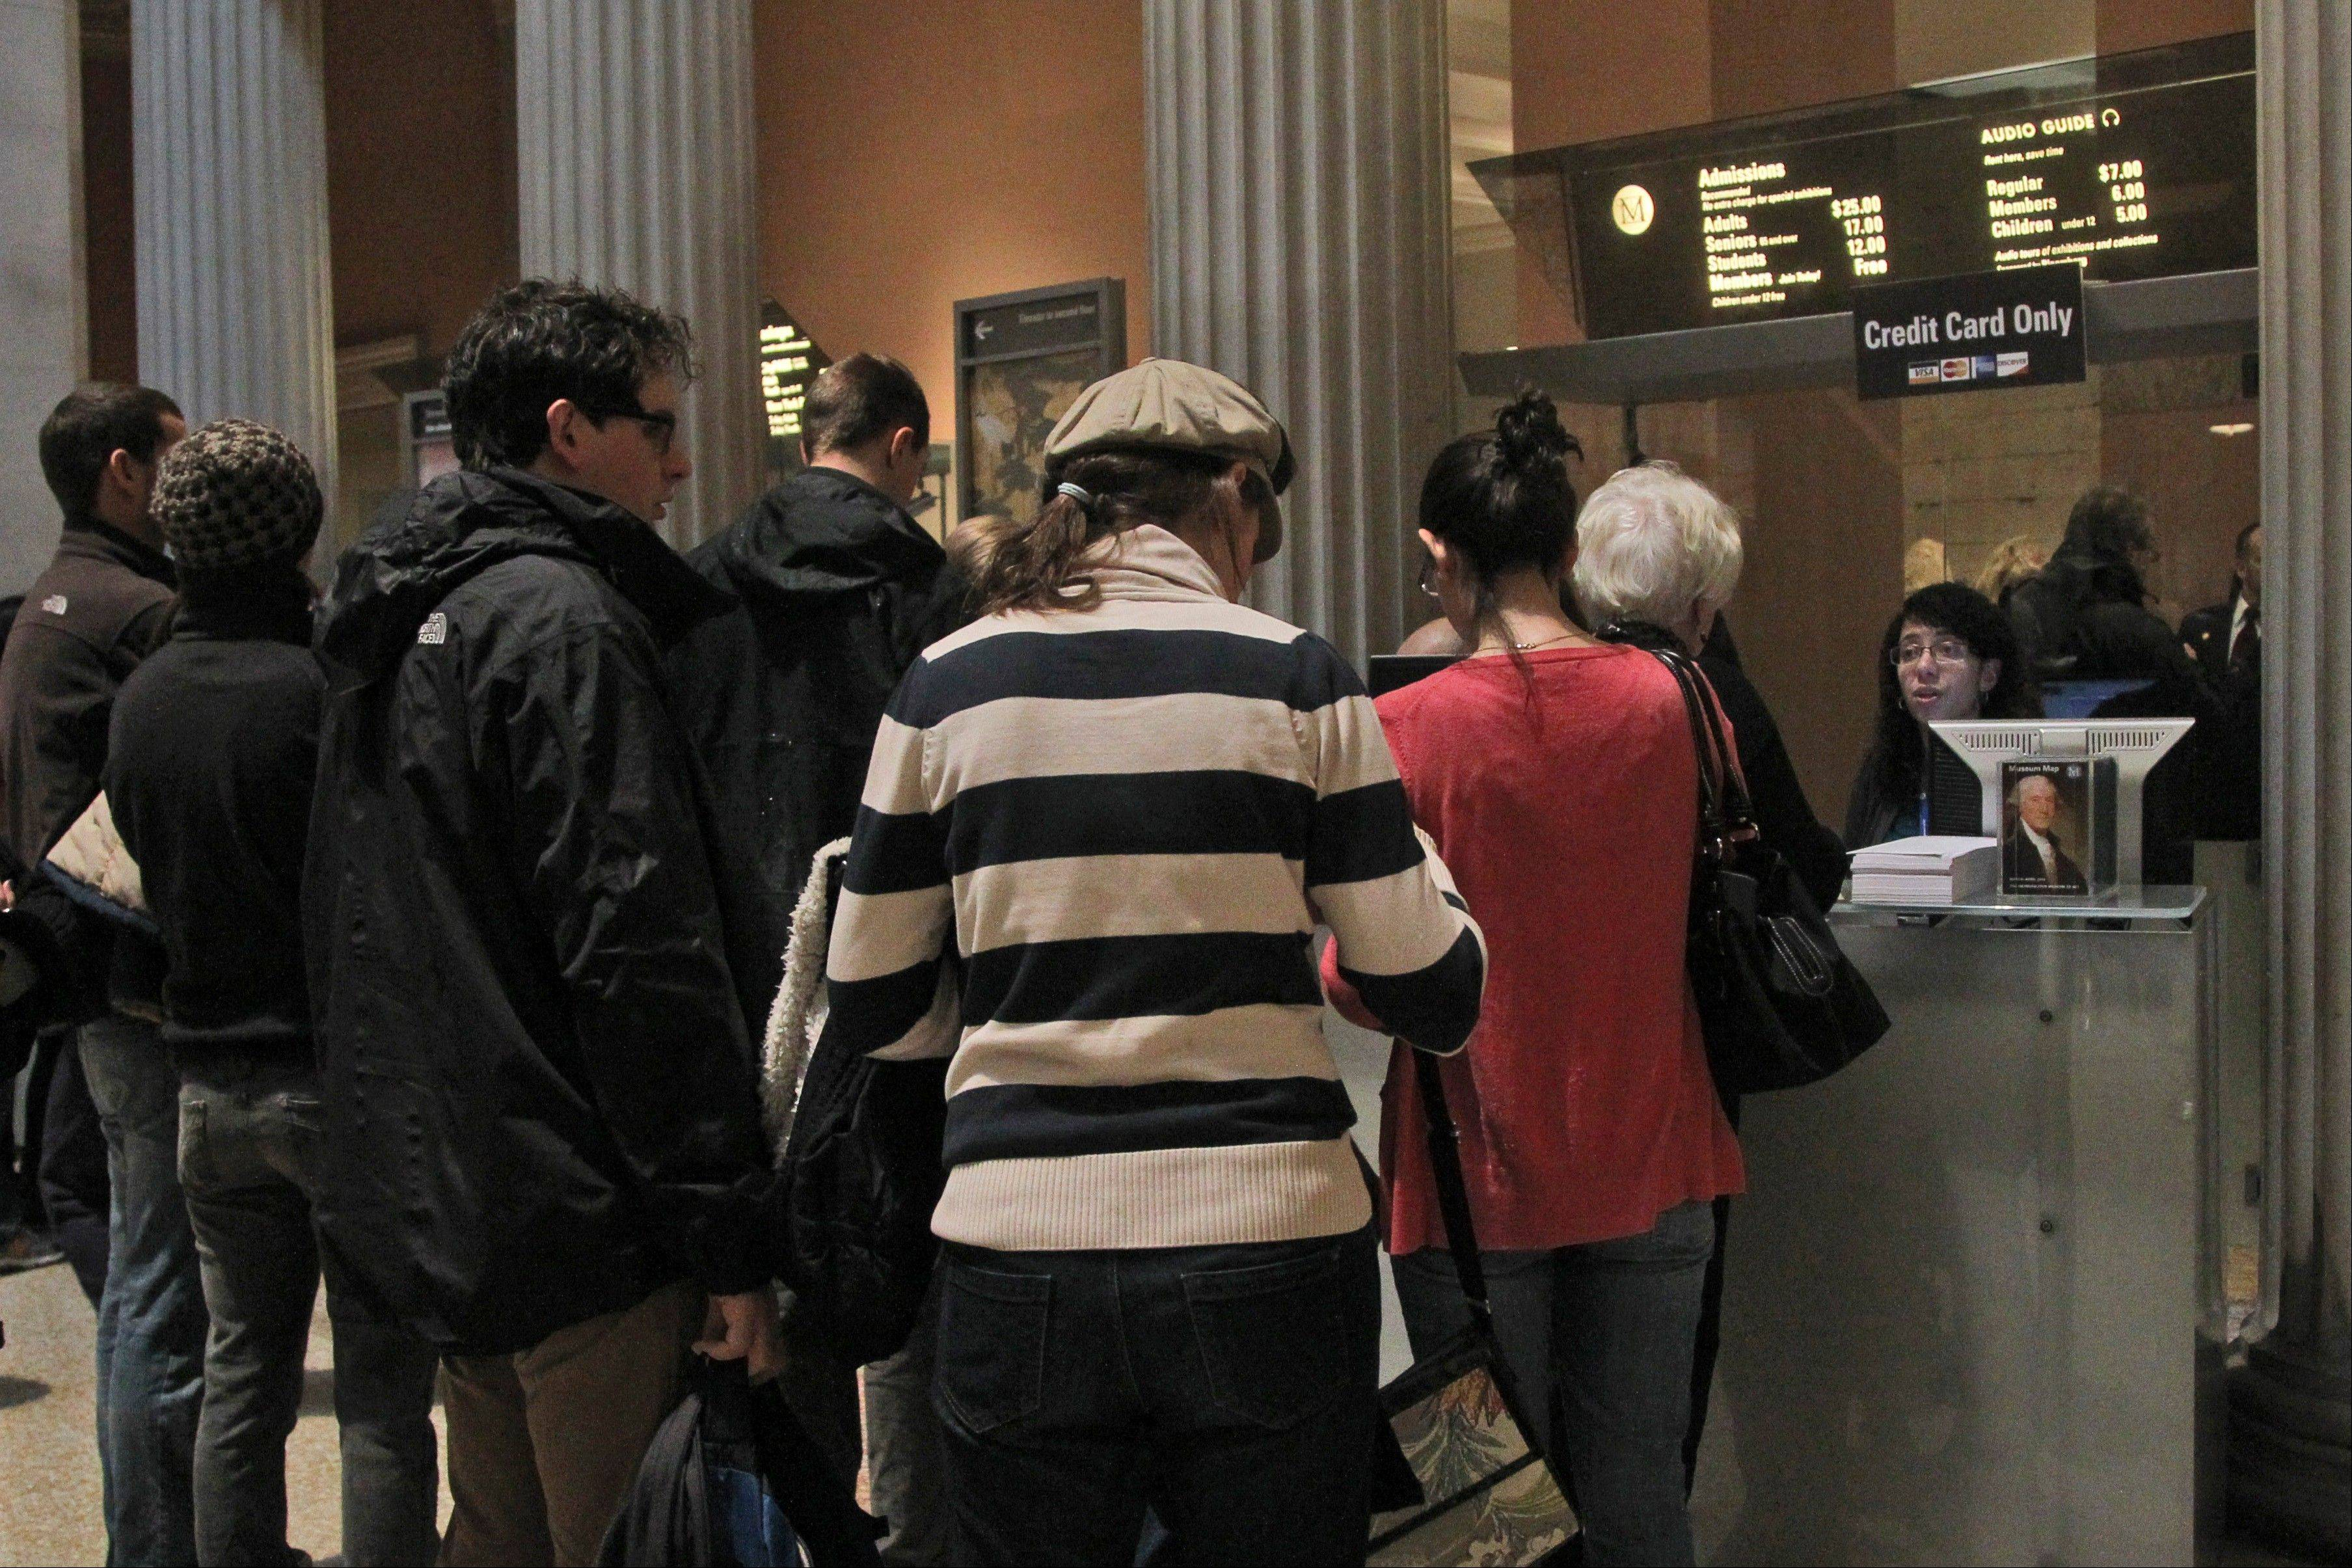 The entrance fee at the Metropolitan Museum of Art in New York is merely a suggested donation: You can pay what you wish but you must pay something.